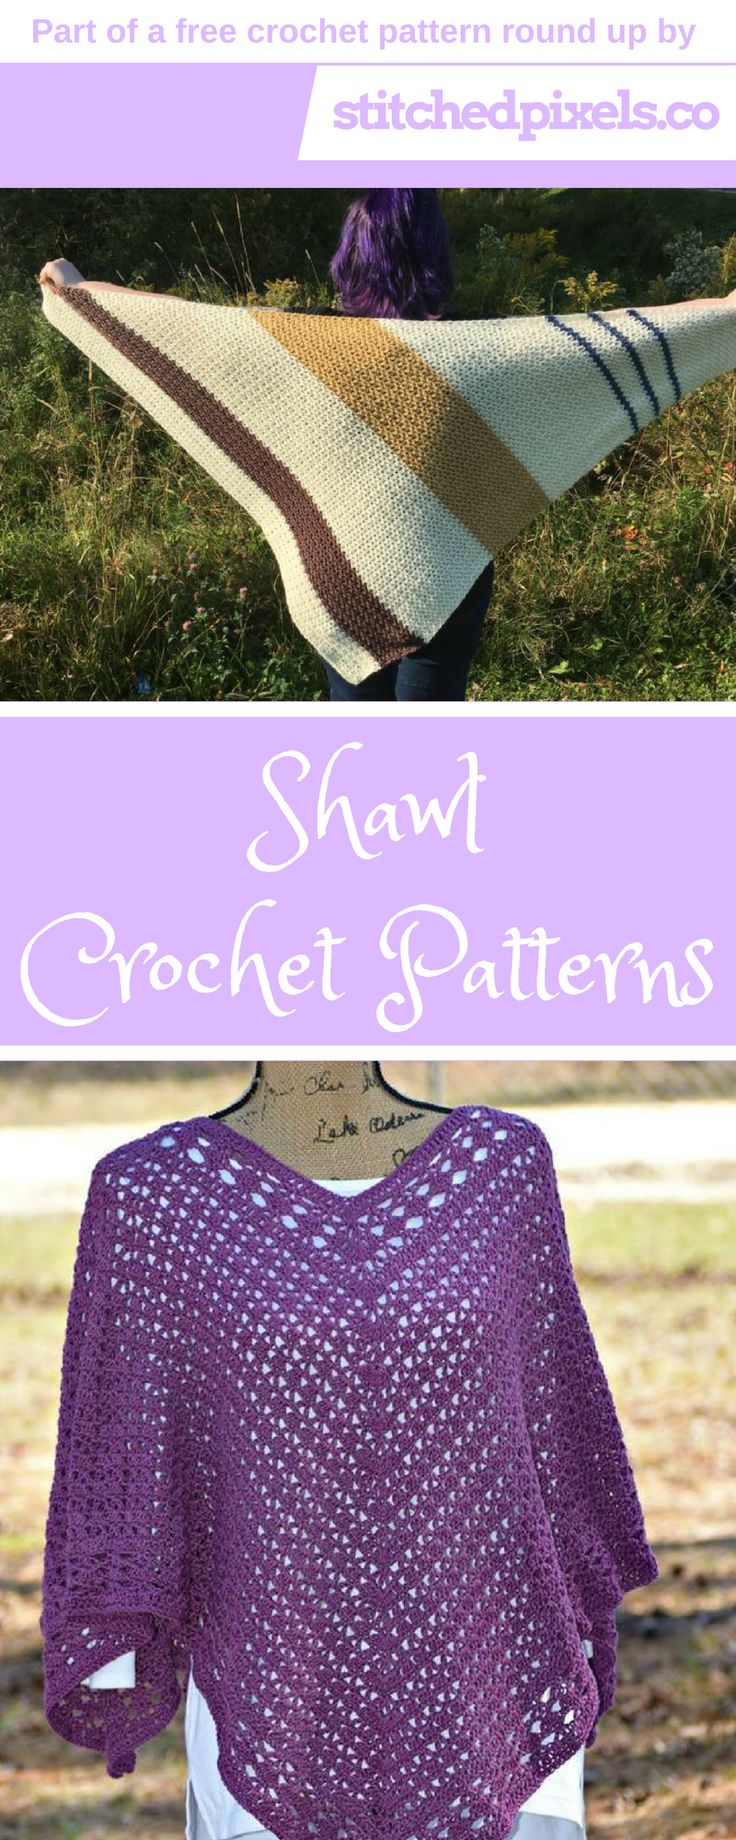 Check out the Free Shawl Crochet Pattern Round up! There are 11 FREE patterns, so you can take a break from all that gift making, and make something for yourself! To get the patterns, just click the photo!